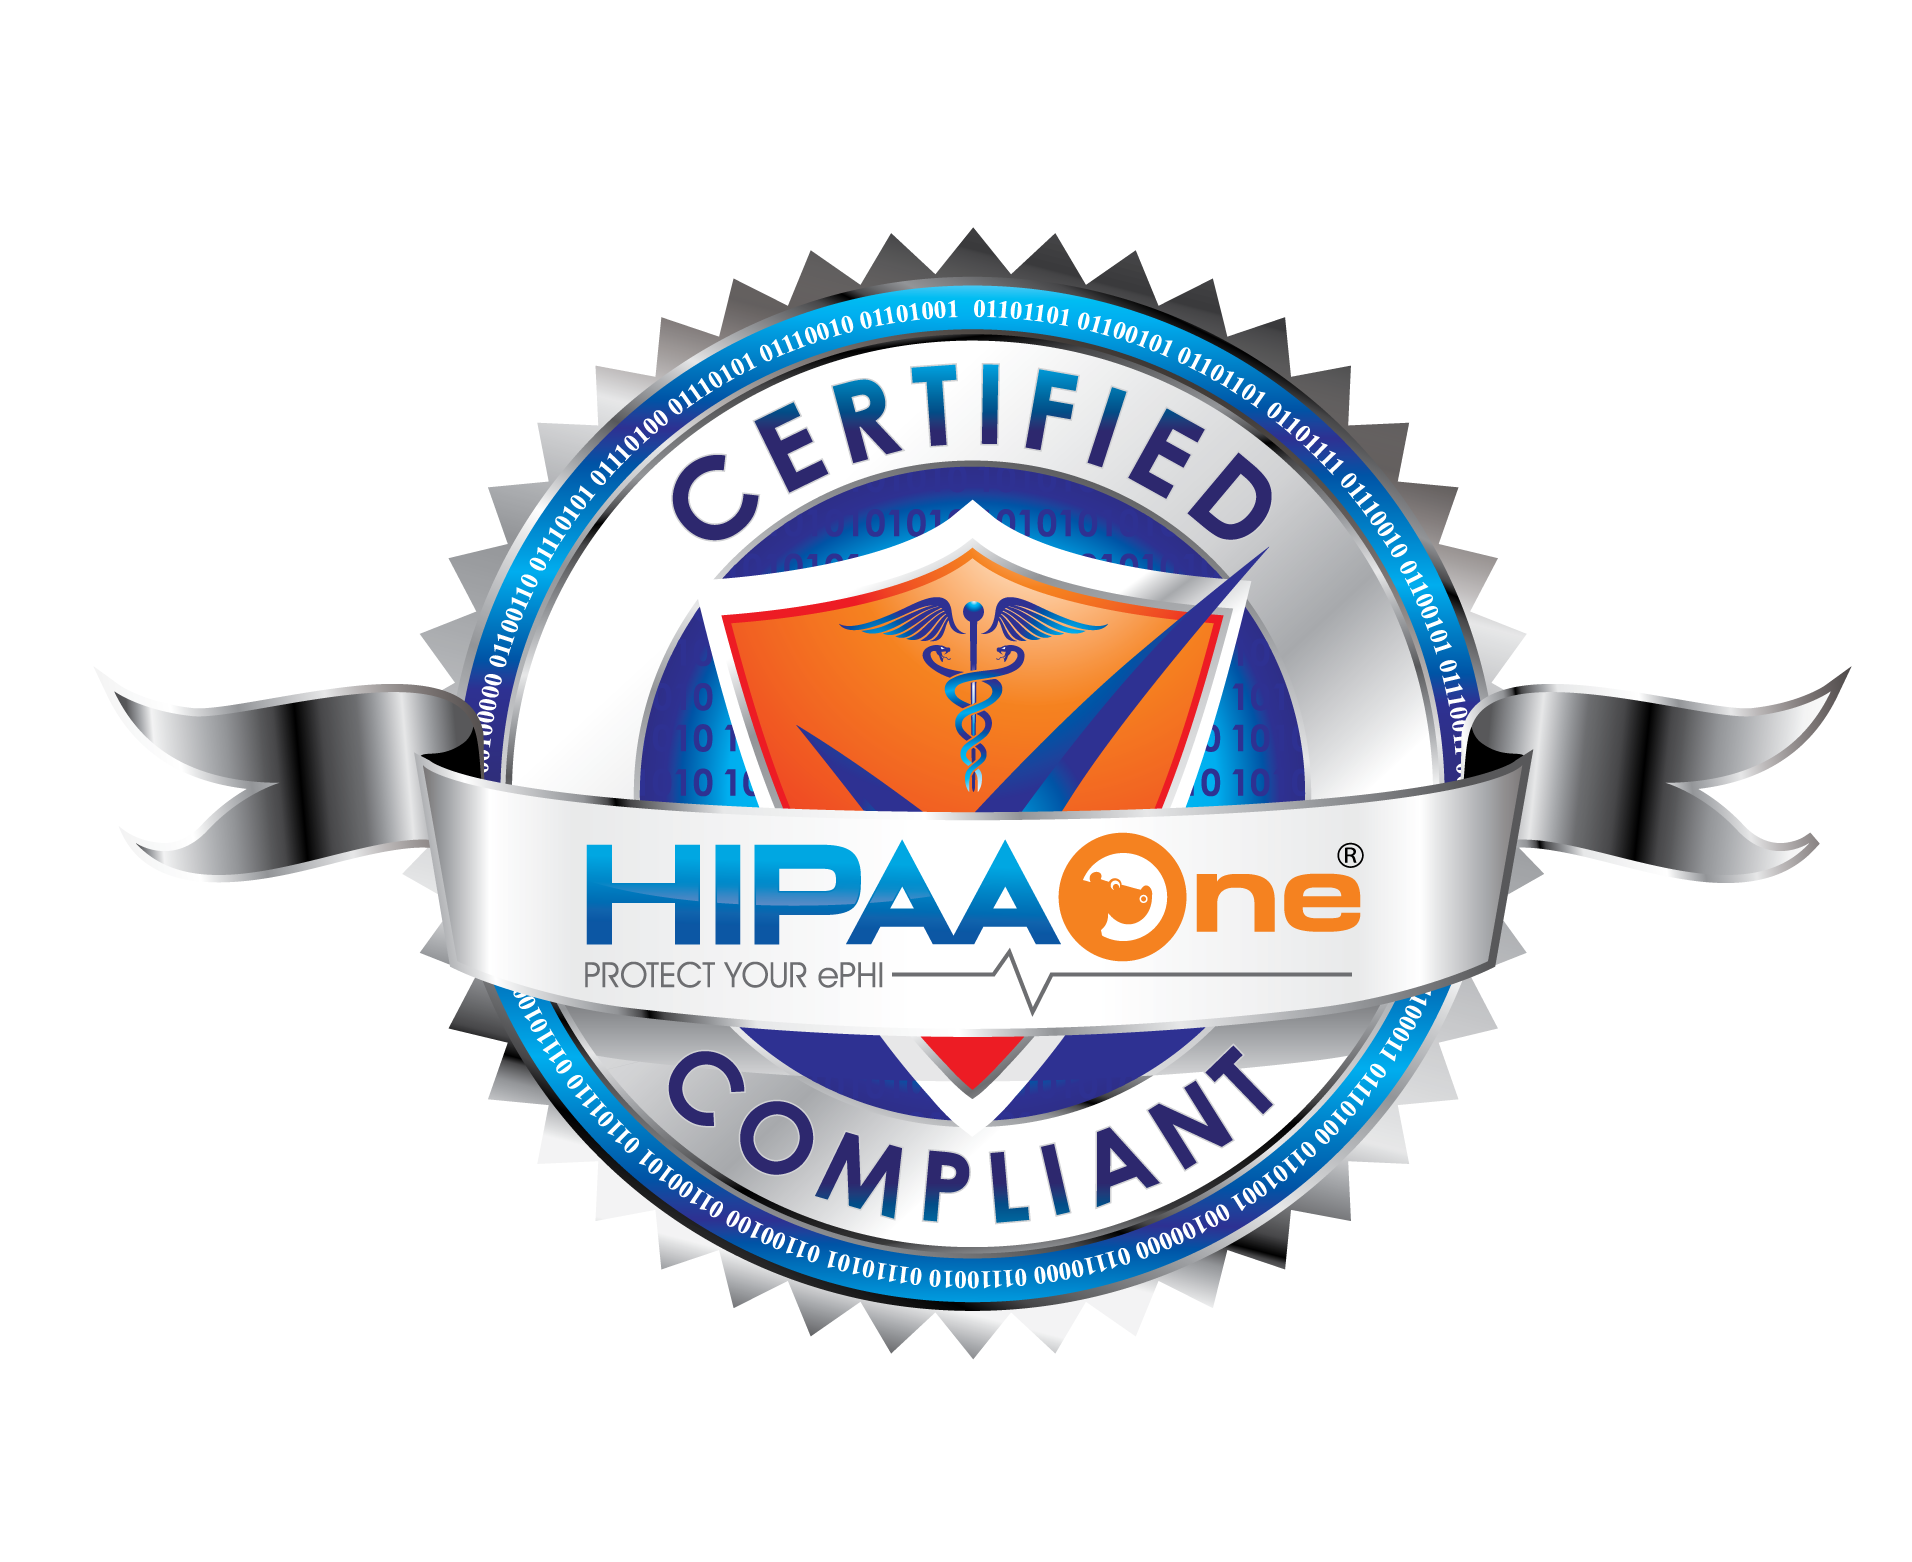 HIPAA One Compliance Seal